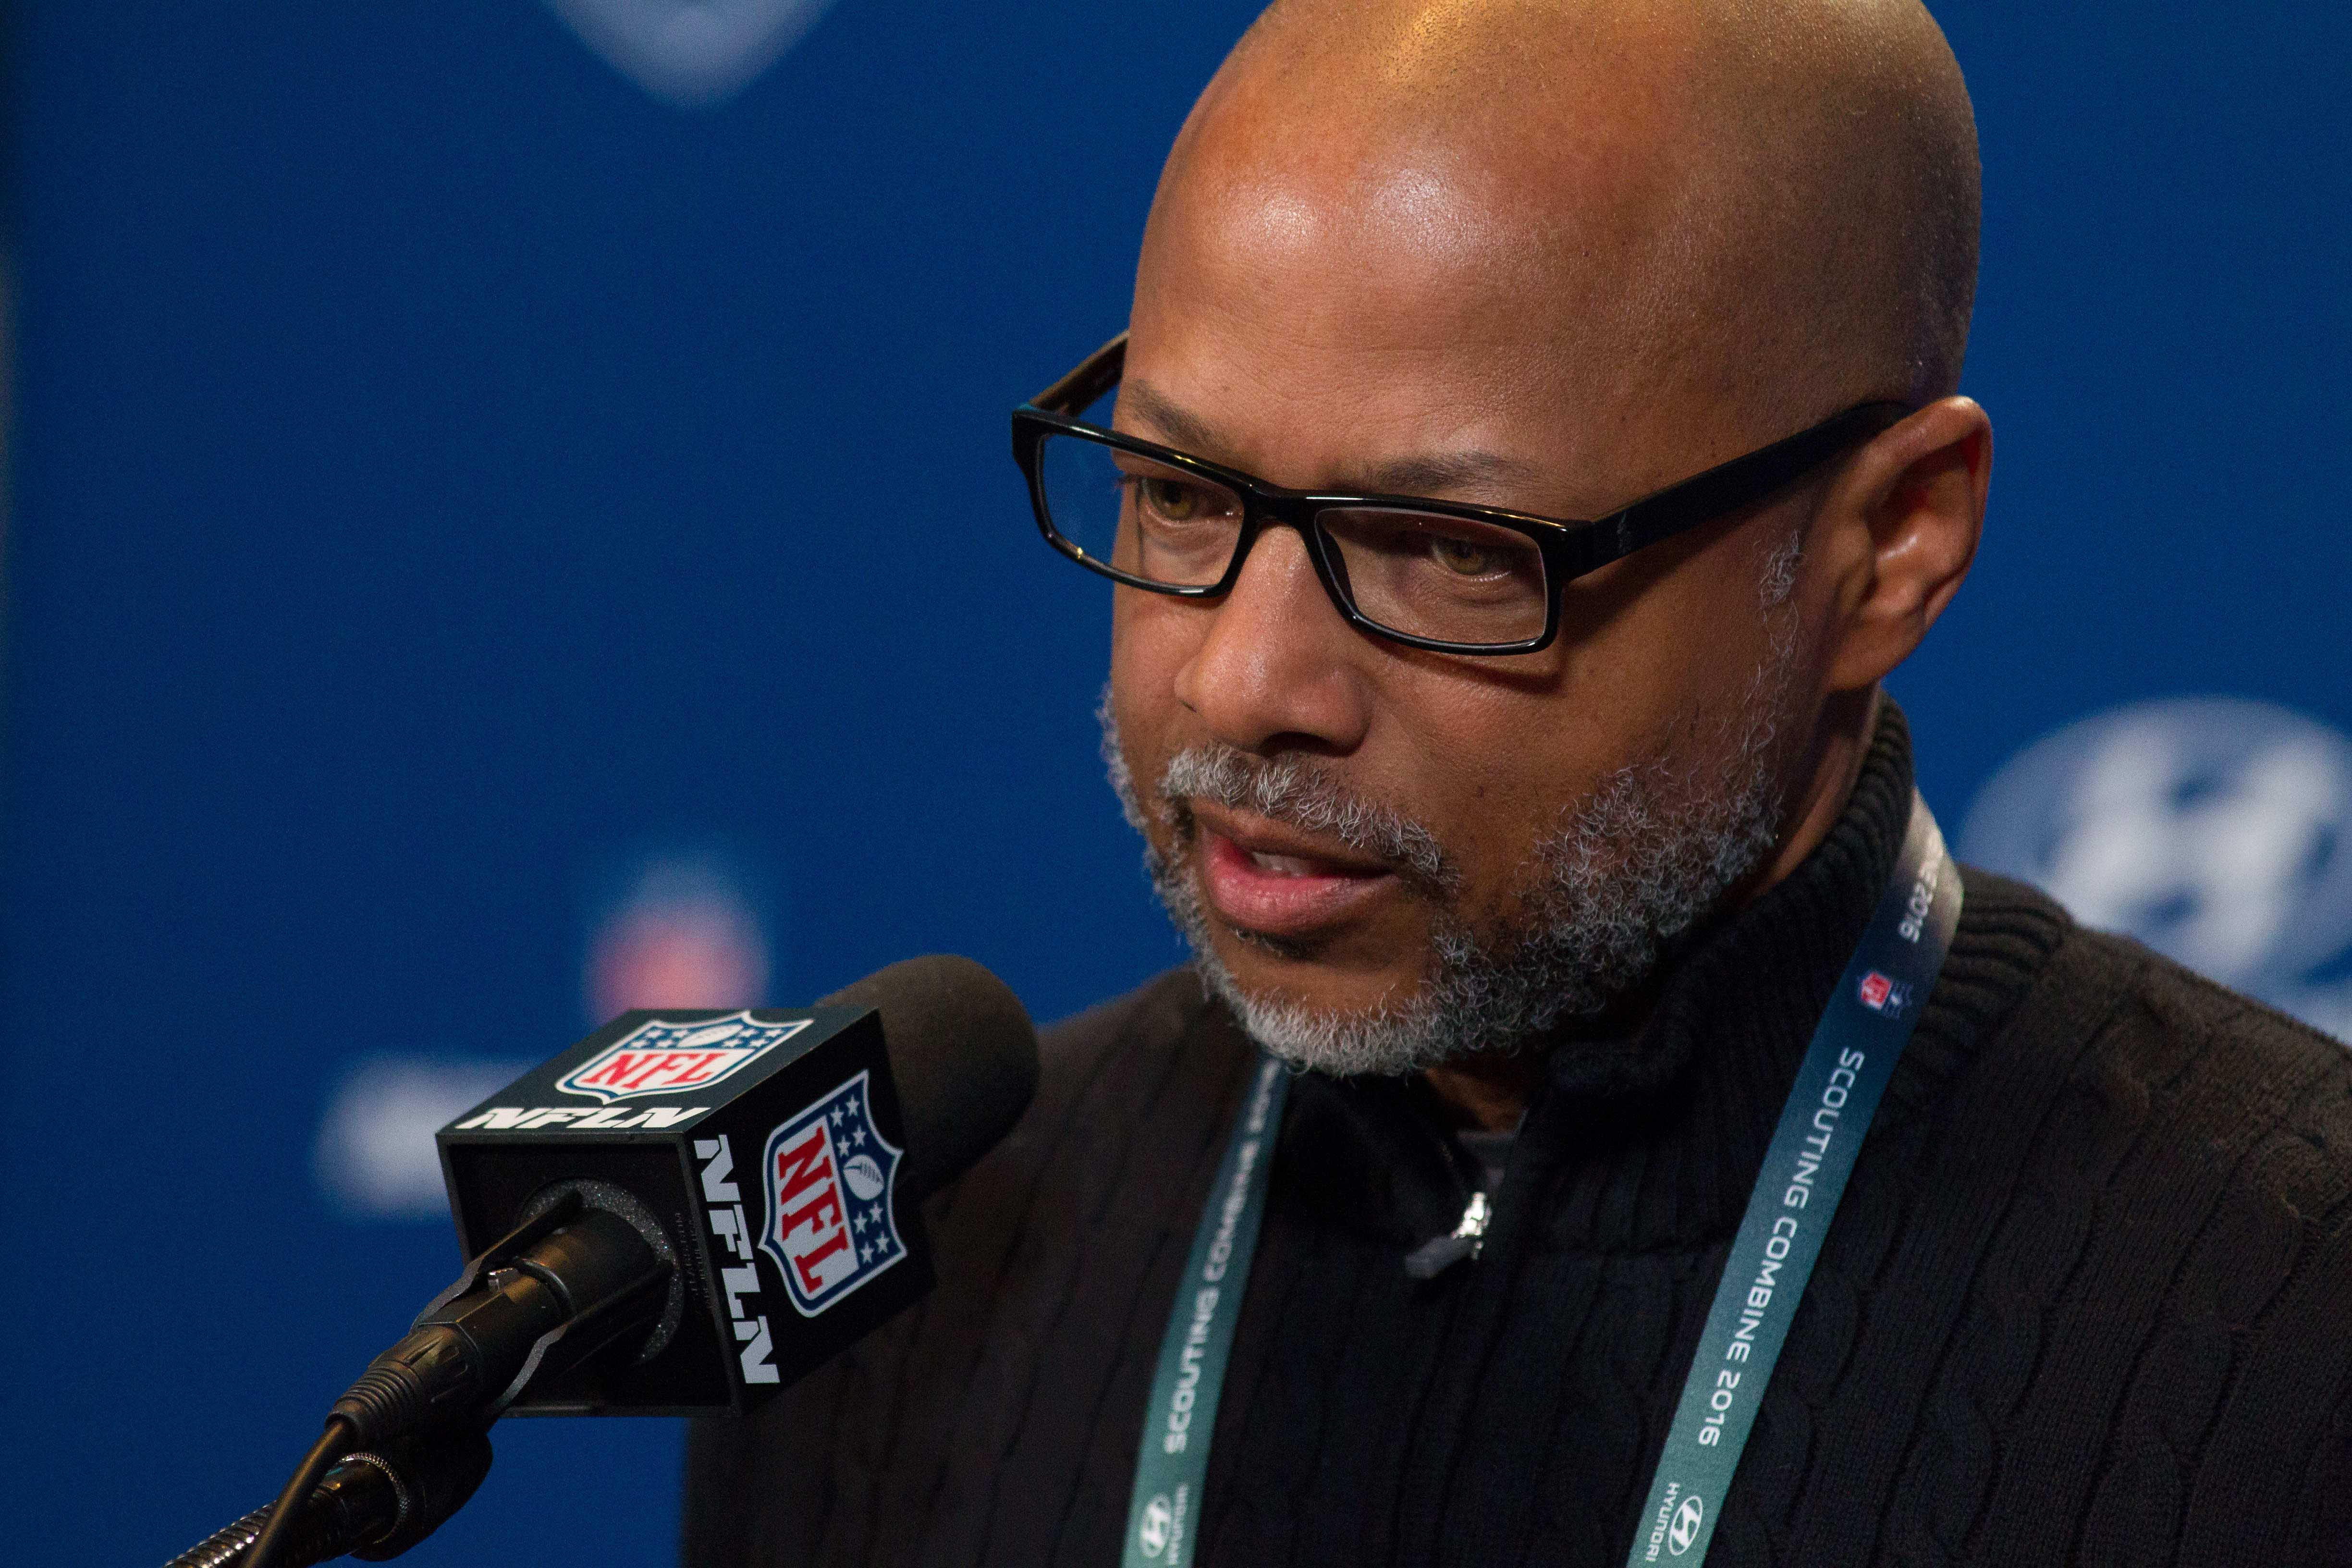 Giants general manager Jerry Reese